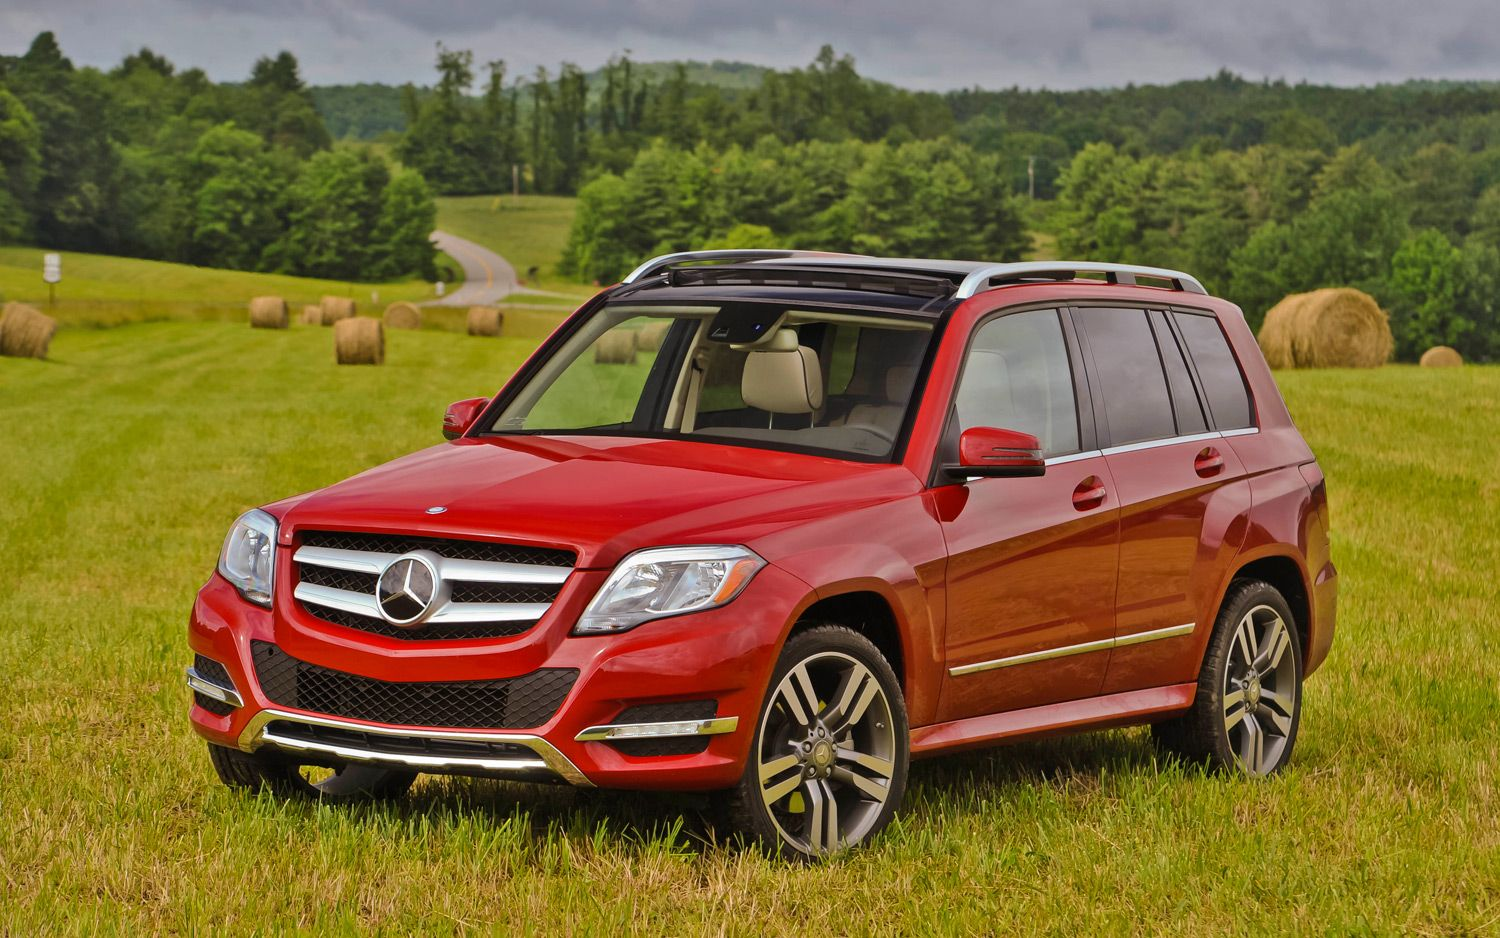 2017 Mercedes Glk 350 Just Got This Tonight In Gorgeous Red Color As